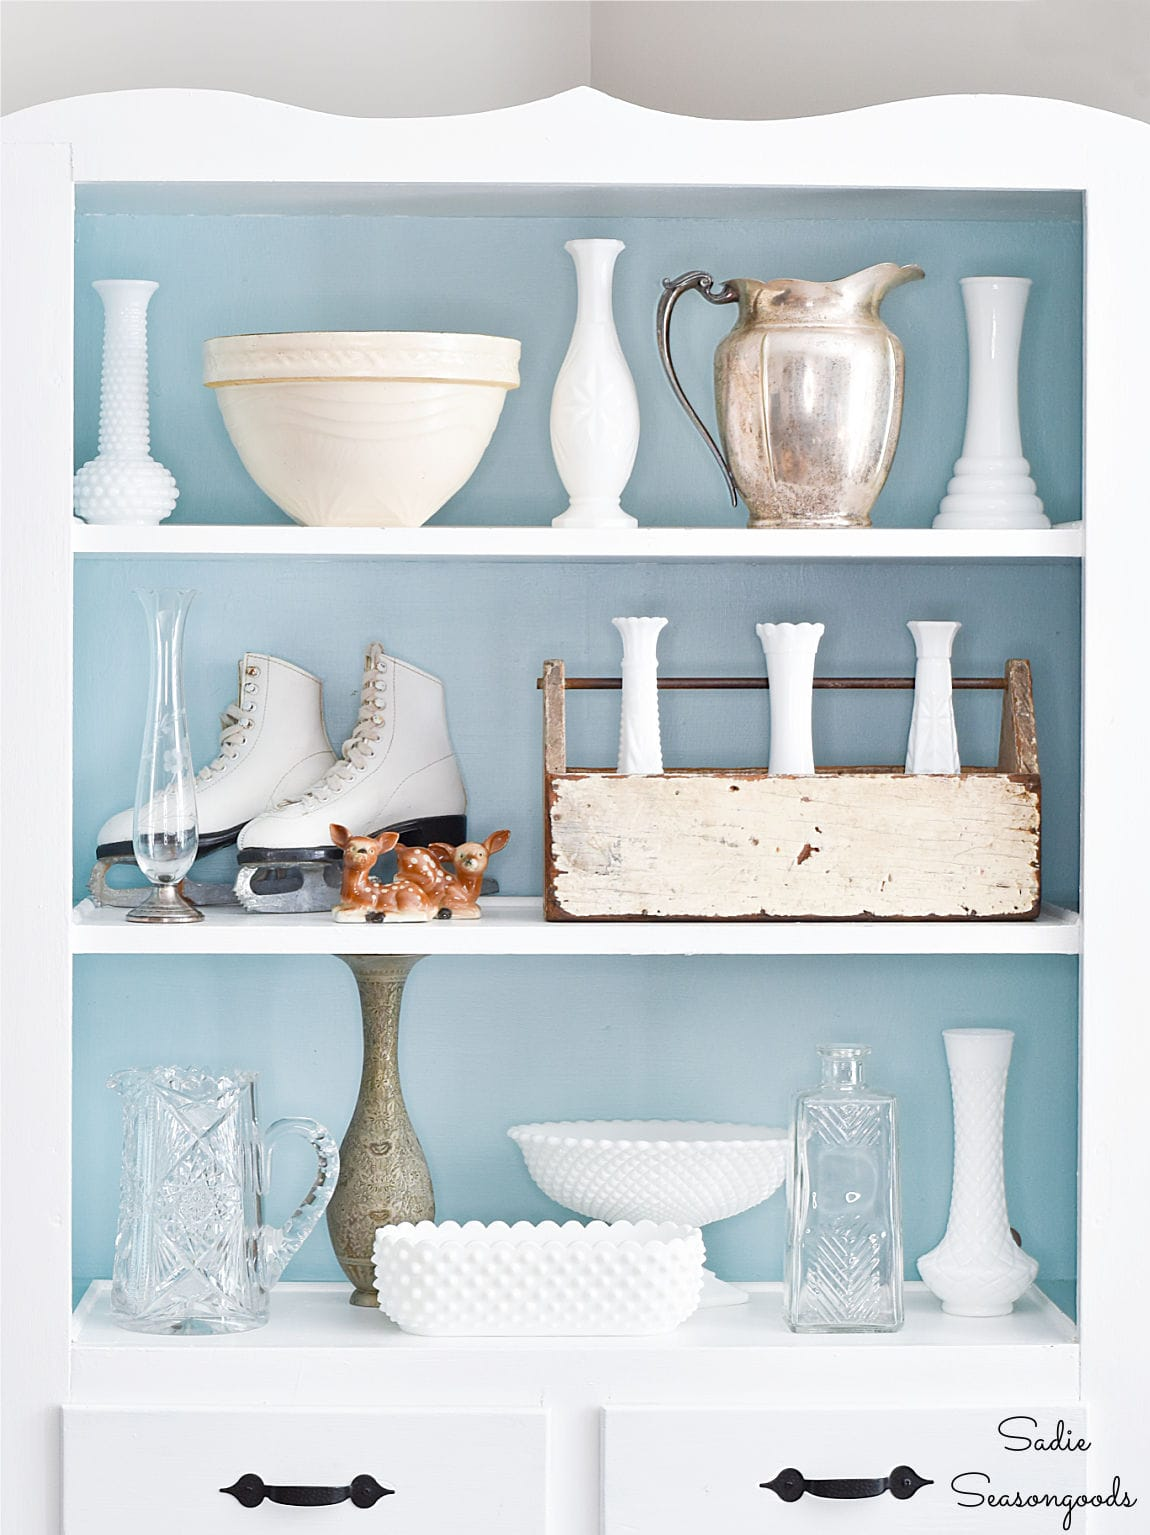 Thrifting for winter decorating ideas